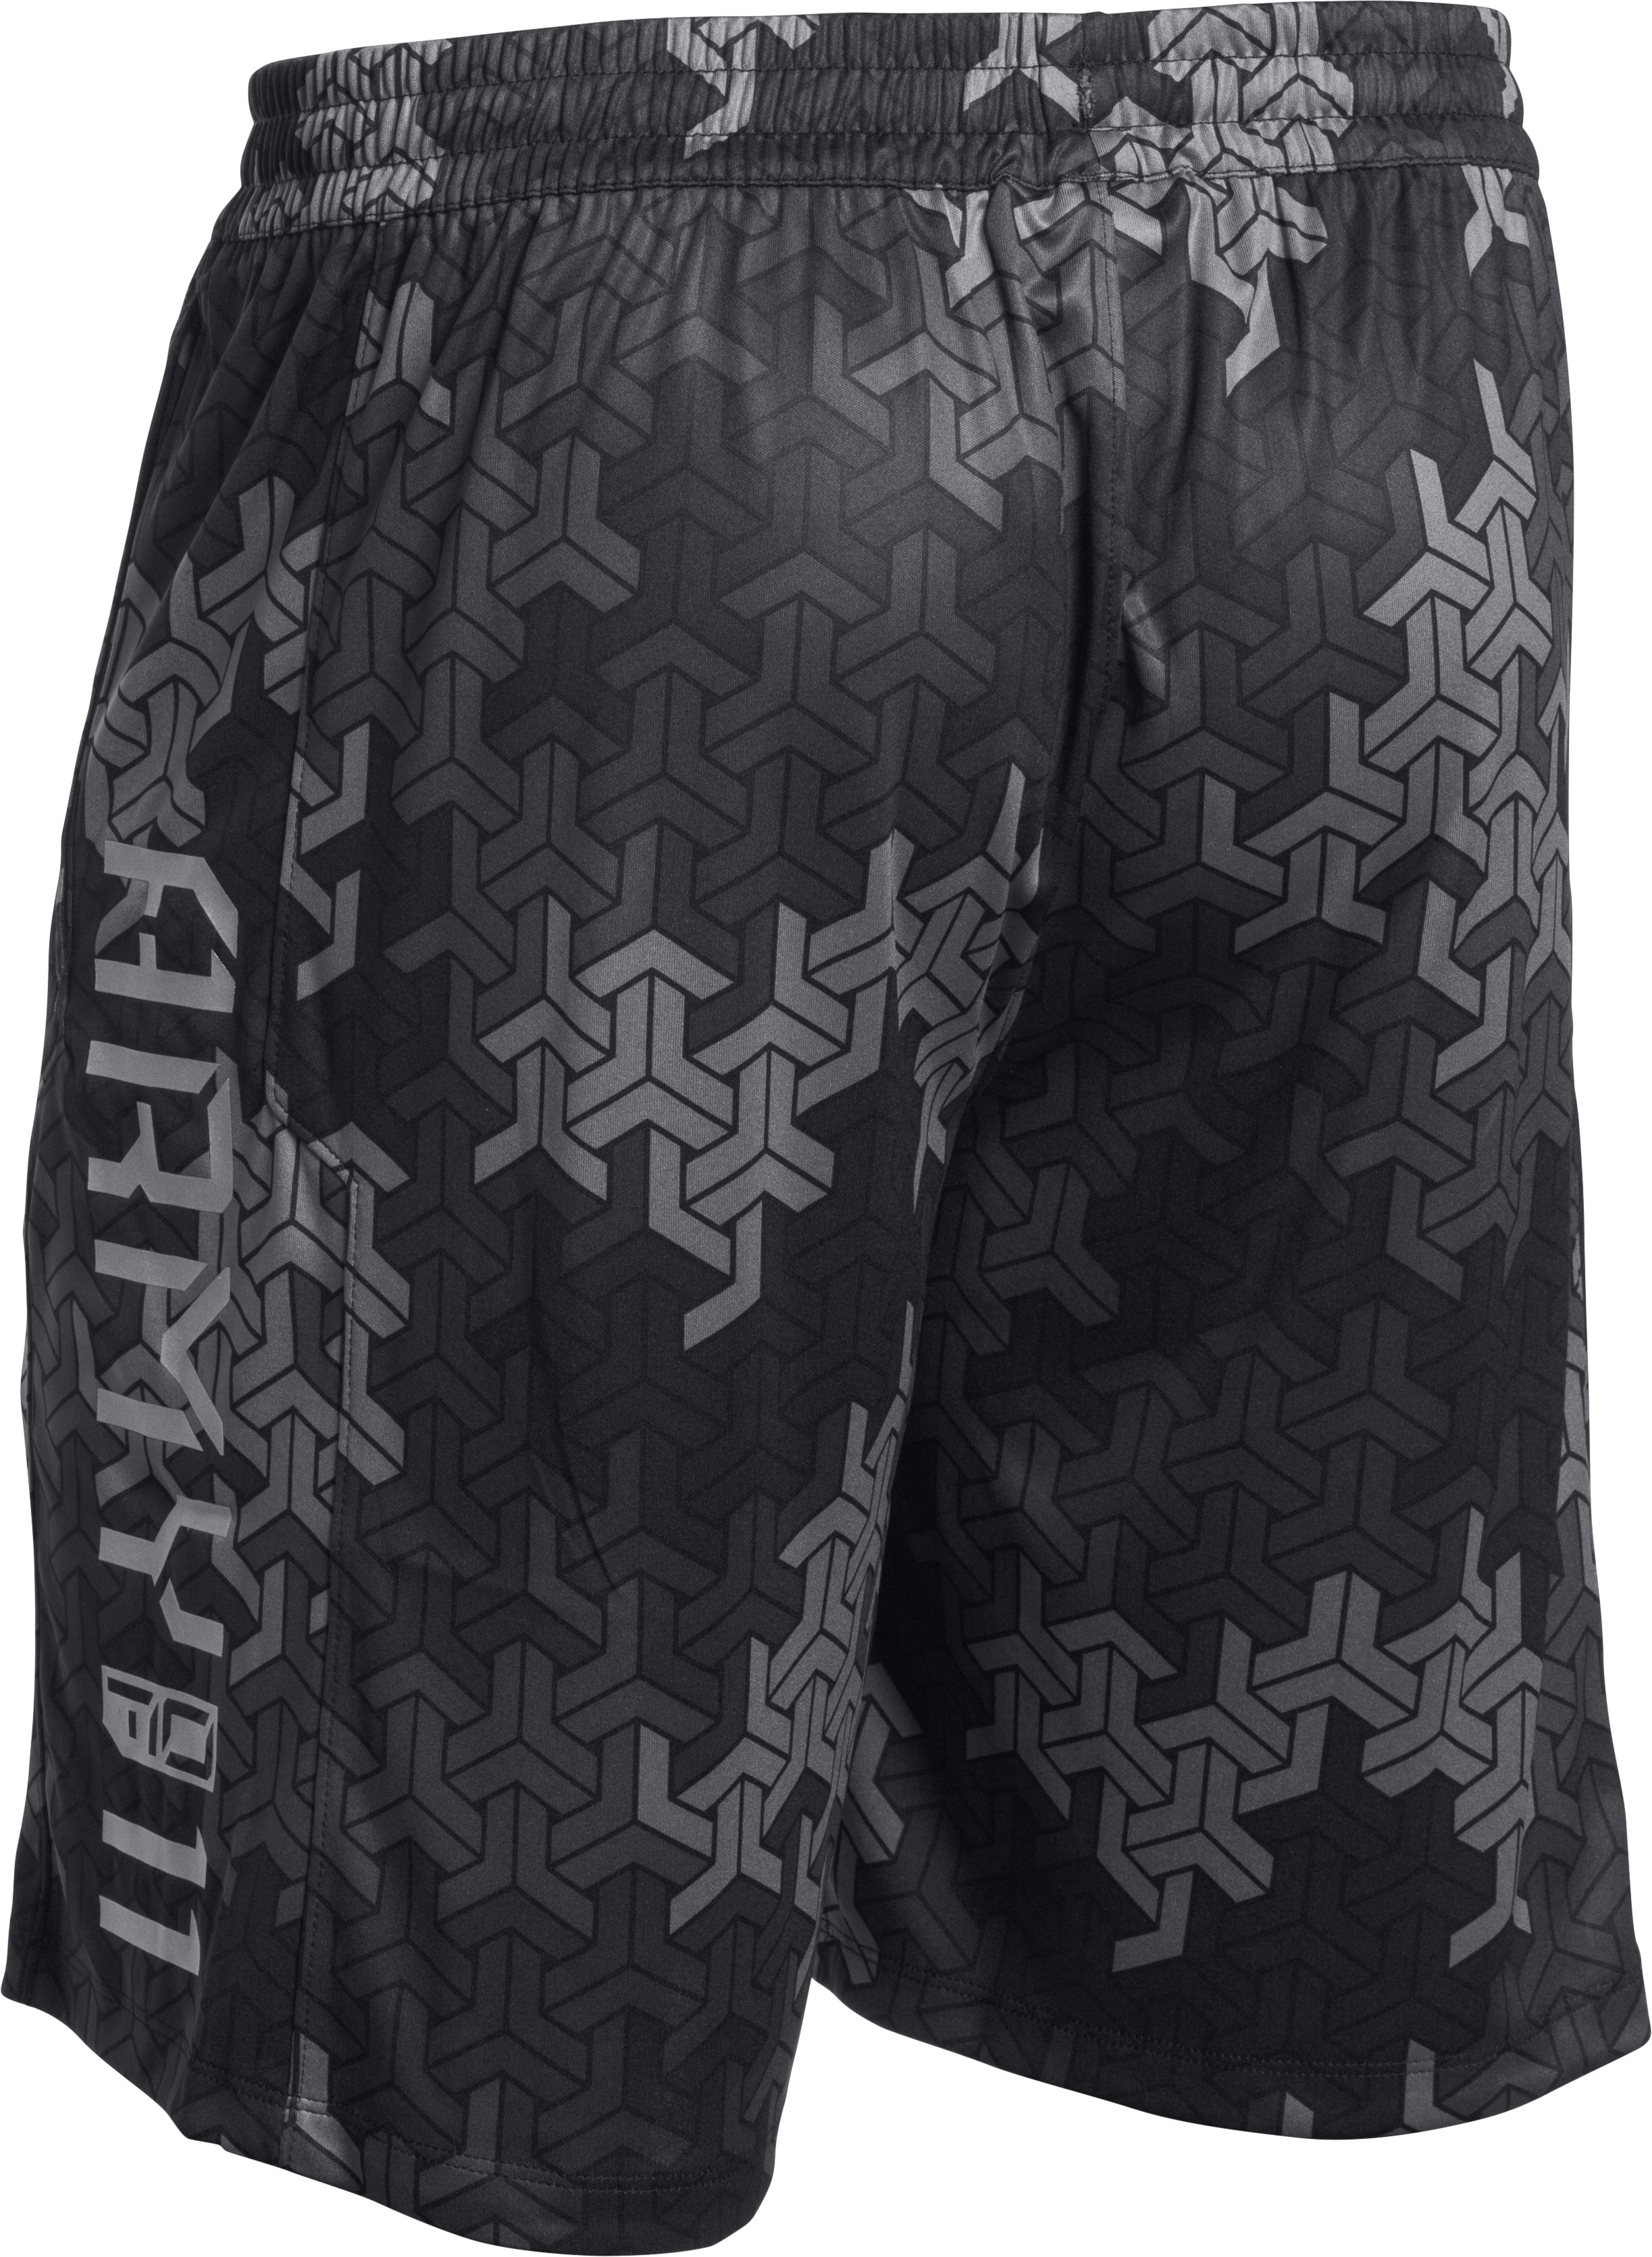 Men's UA Army Of 11 Shorts, Black , undefined